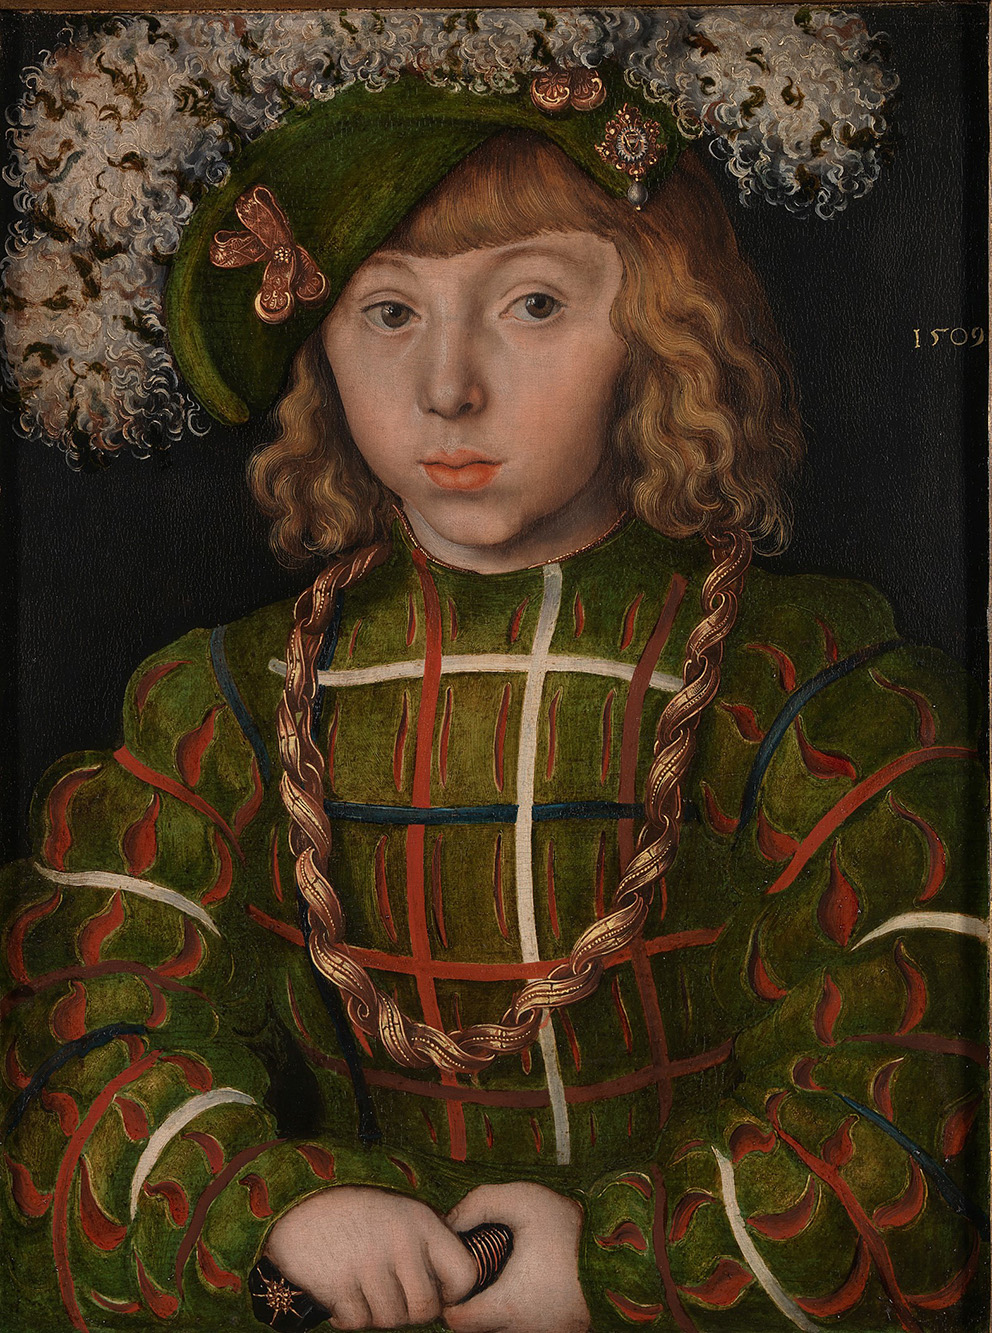 Lucas Cranach the Elder, Portrait of Johann Friedrich the Magnanimous, 1509.Photograph © The National Gallery, London.